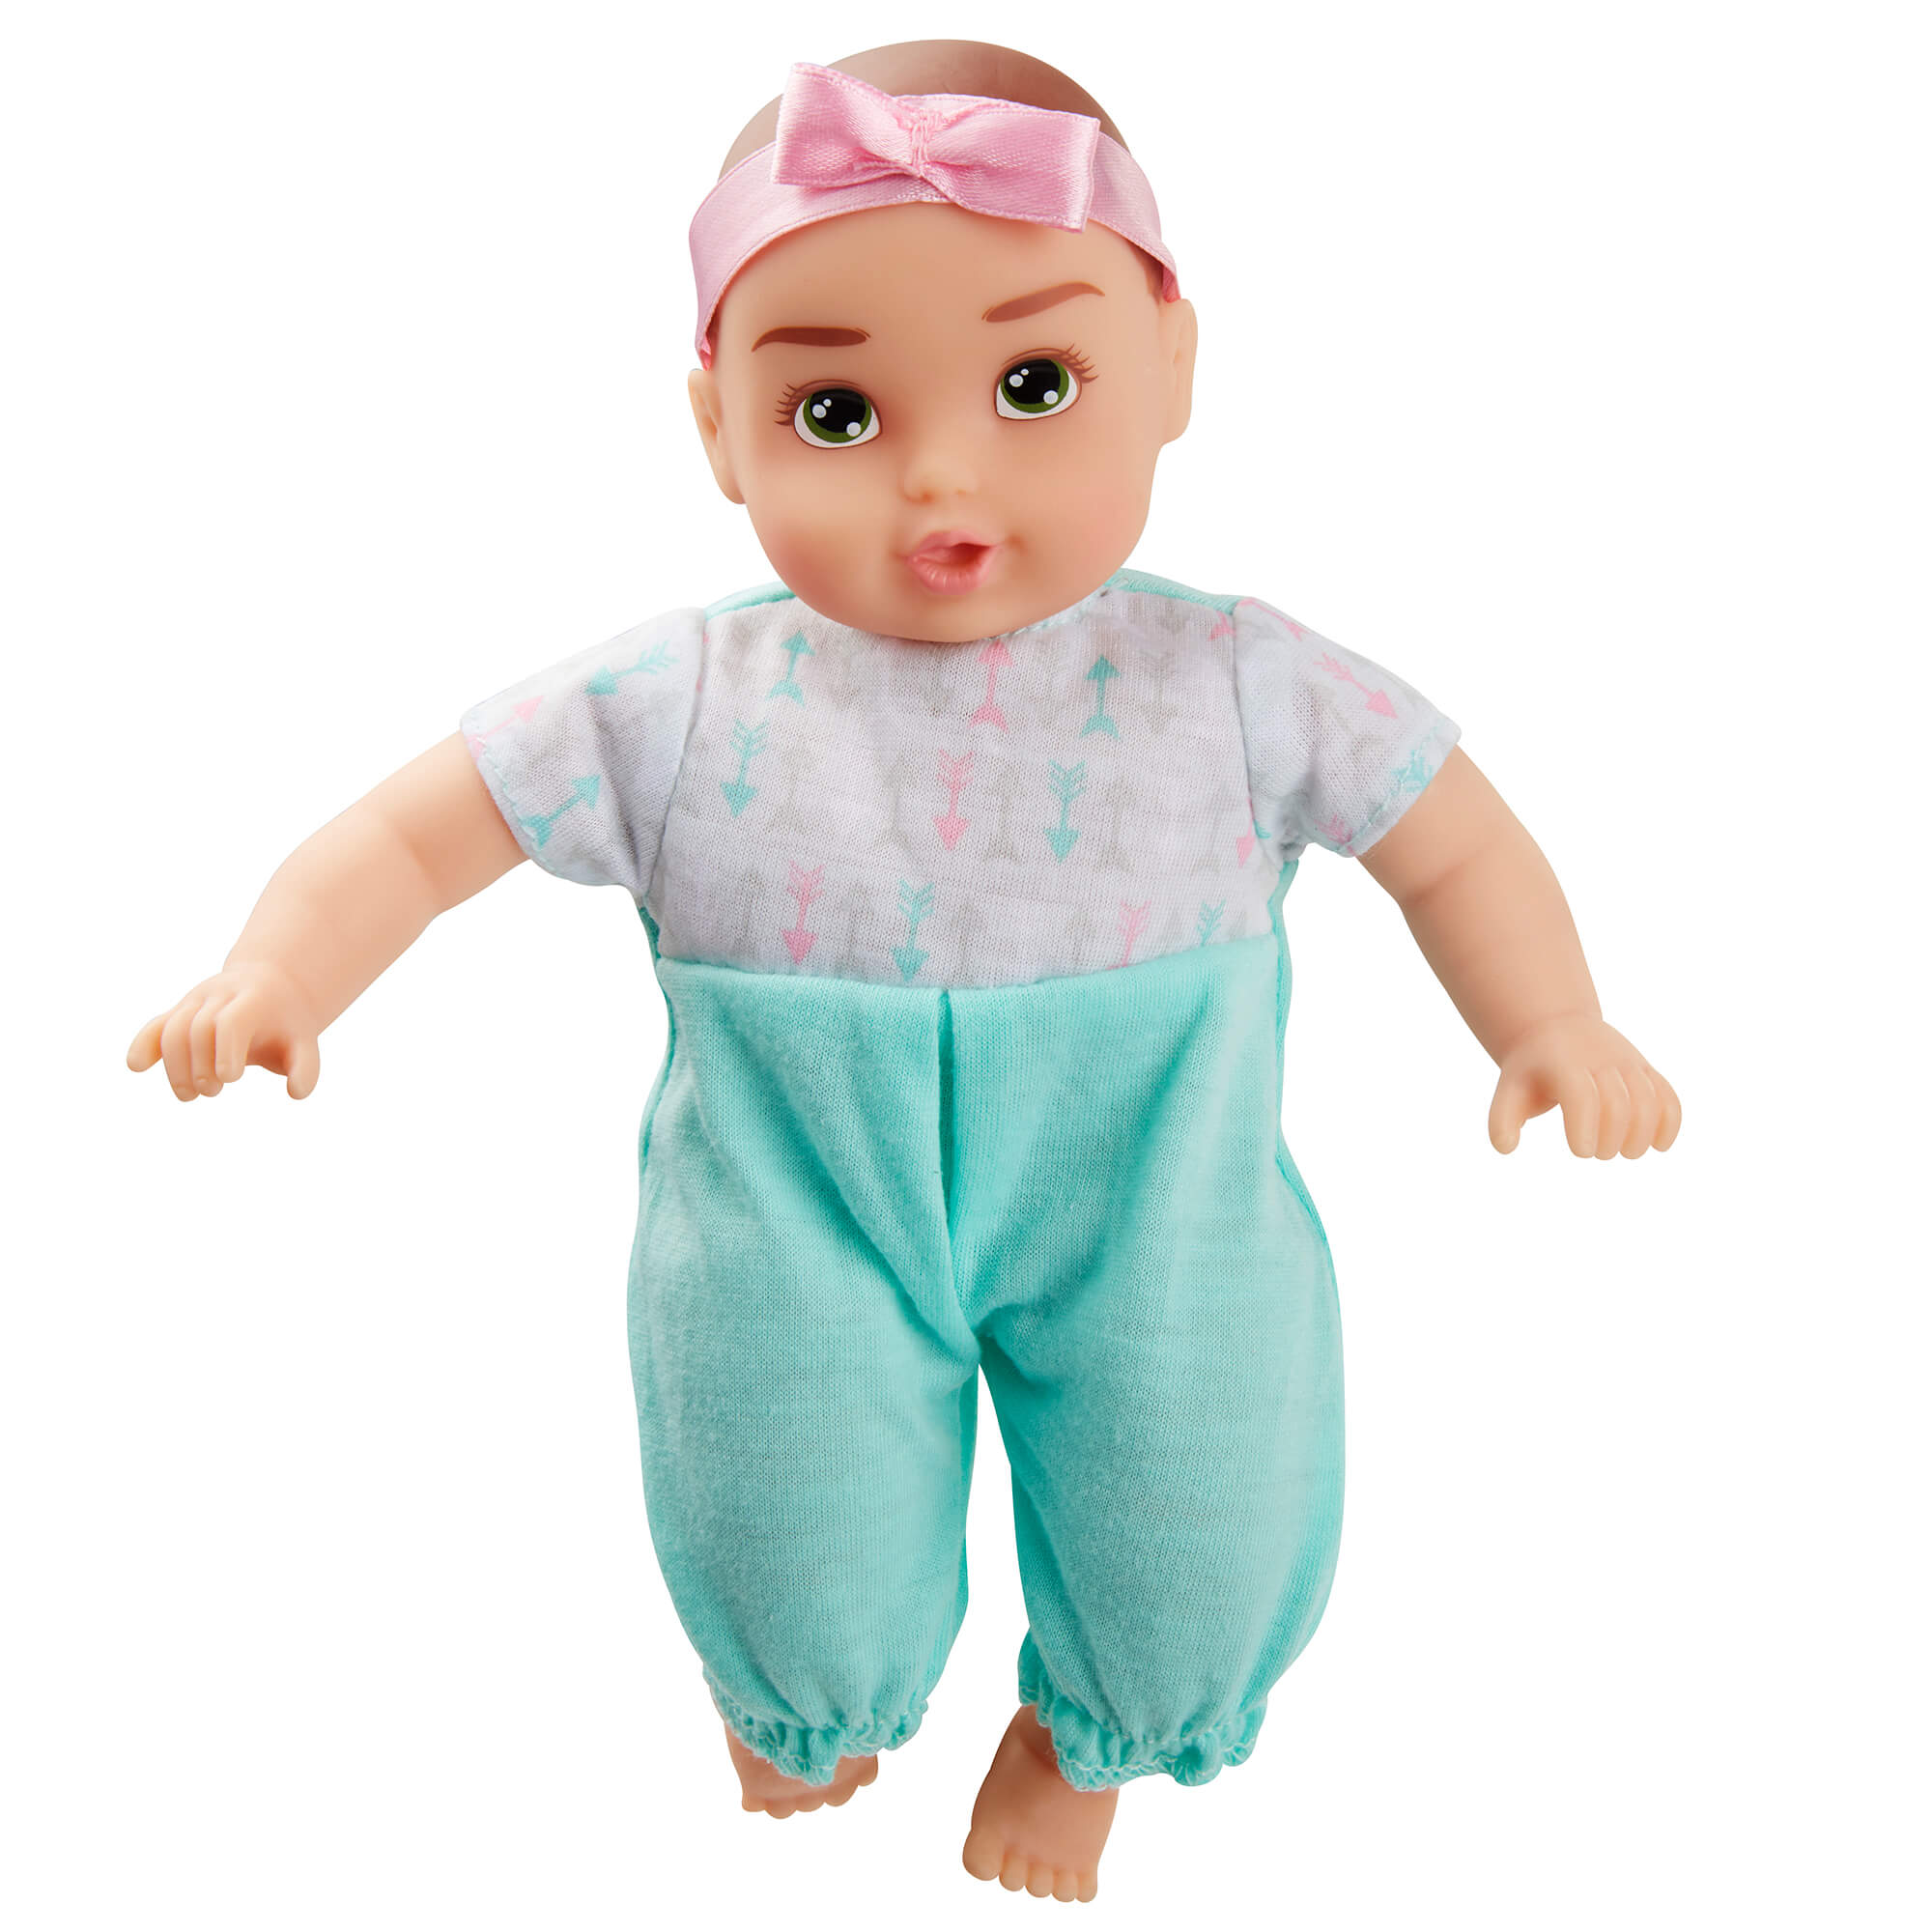 Perfectly Cute Baby 8 inch My Lil' Baby Girl Doll (Brunette - Hazel Eyes)